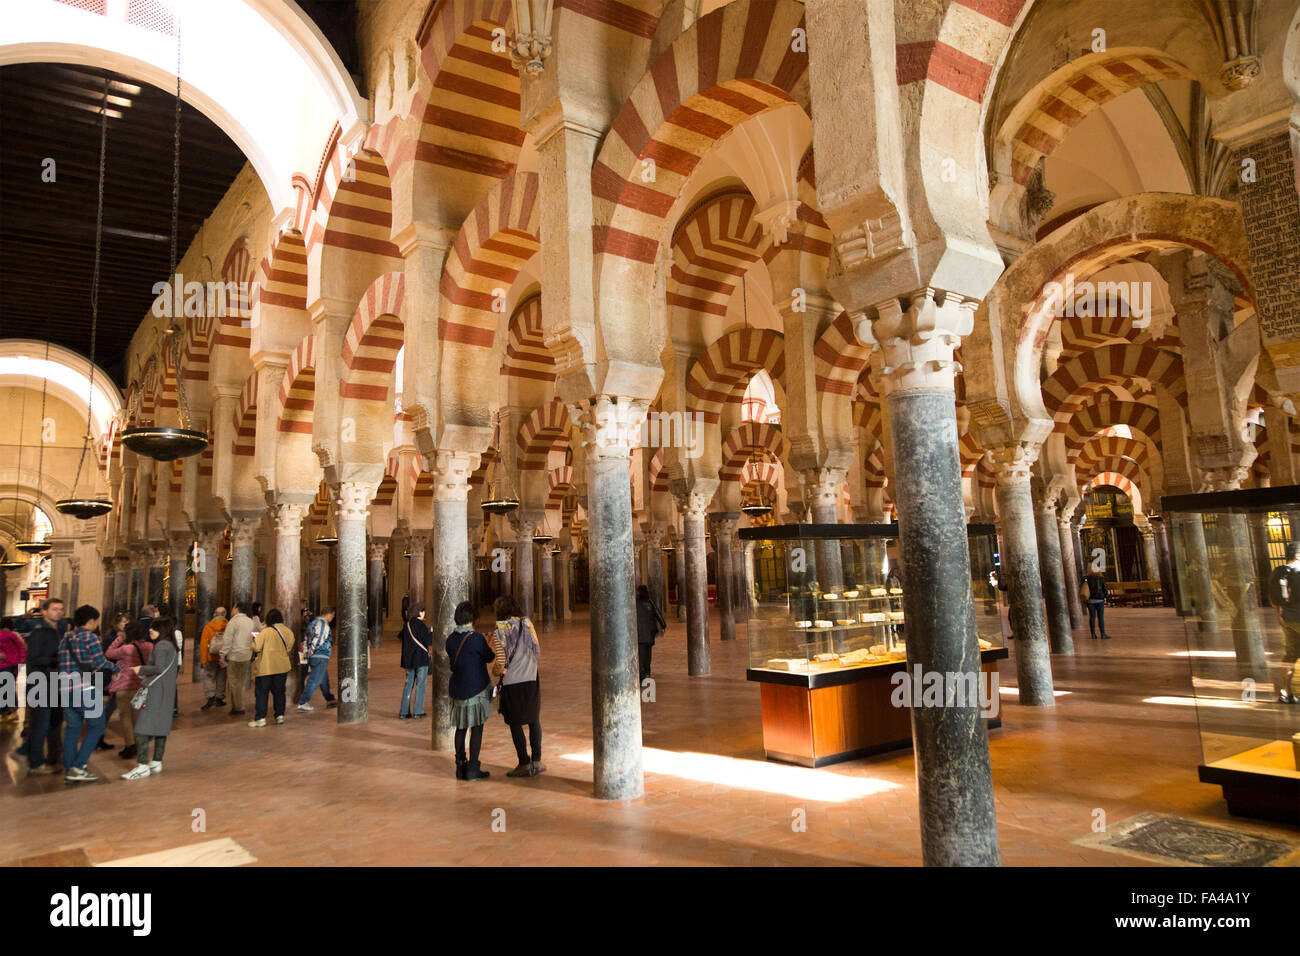 Moorish arches in the former mosque now cathedral, Cordoba, Spain - Stock Image